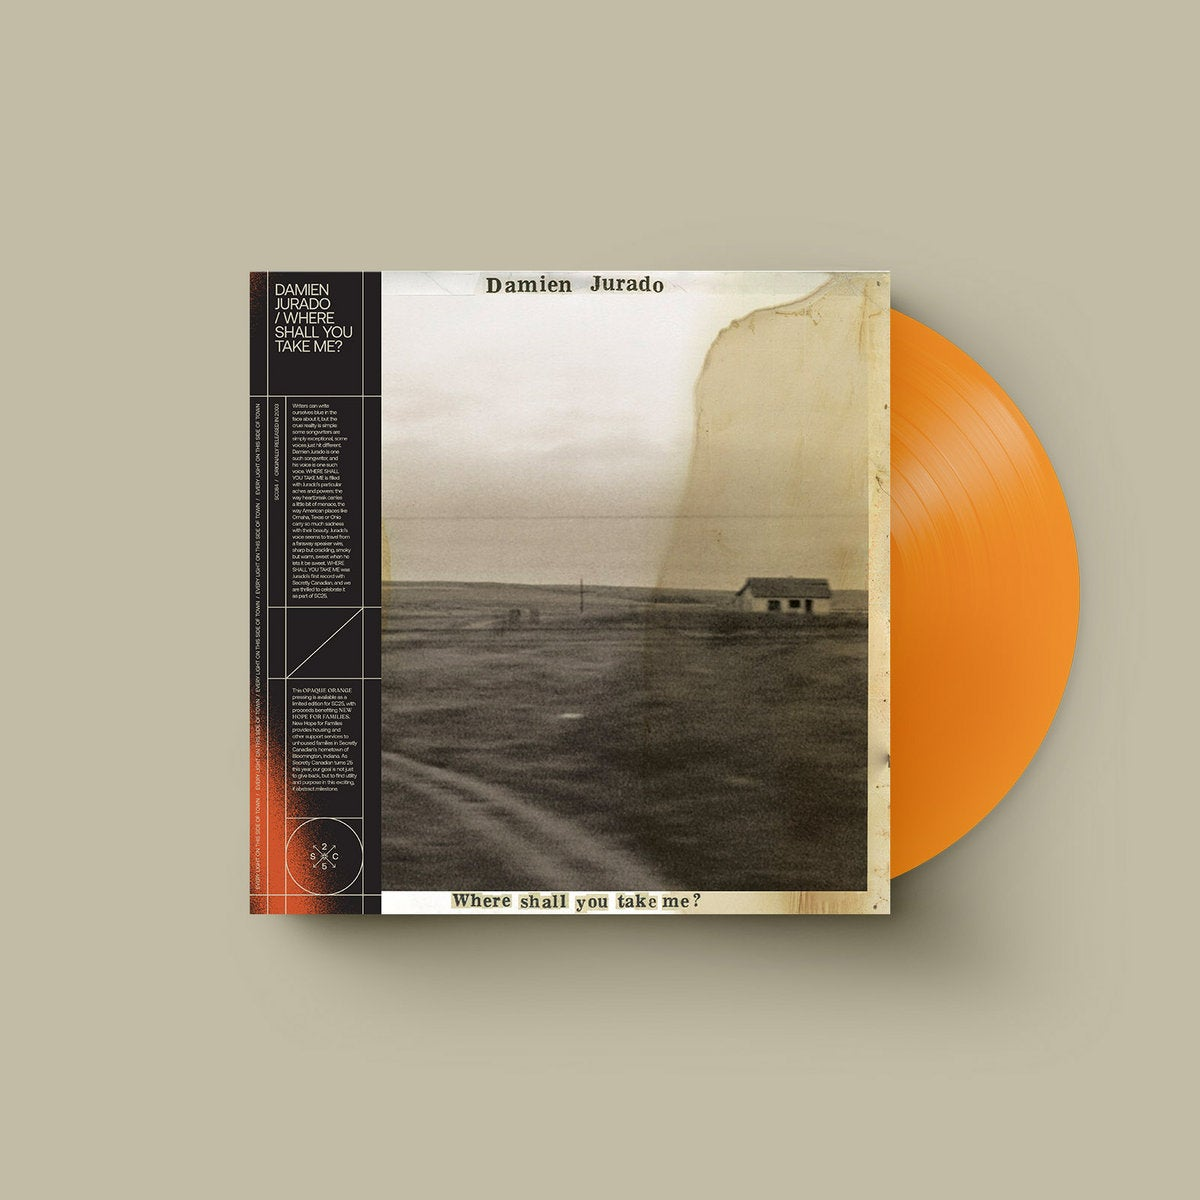 Image of Where Shall You Take Me? / Opaque Orange vinyl (Limited edition)